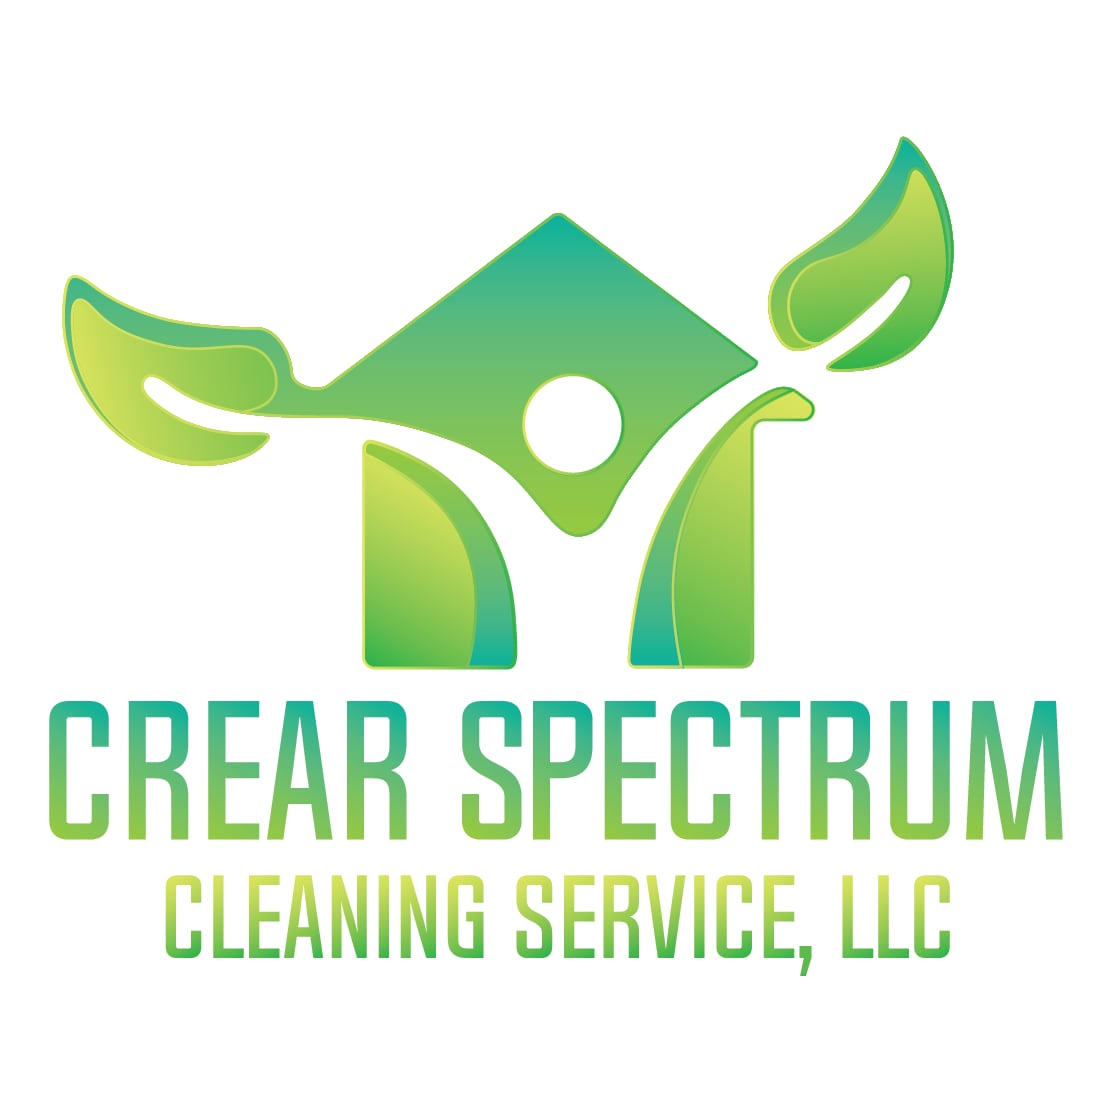 Crear Spectrum Cleaning Service, LLC